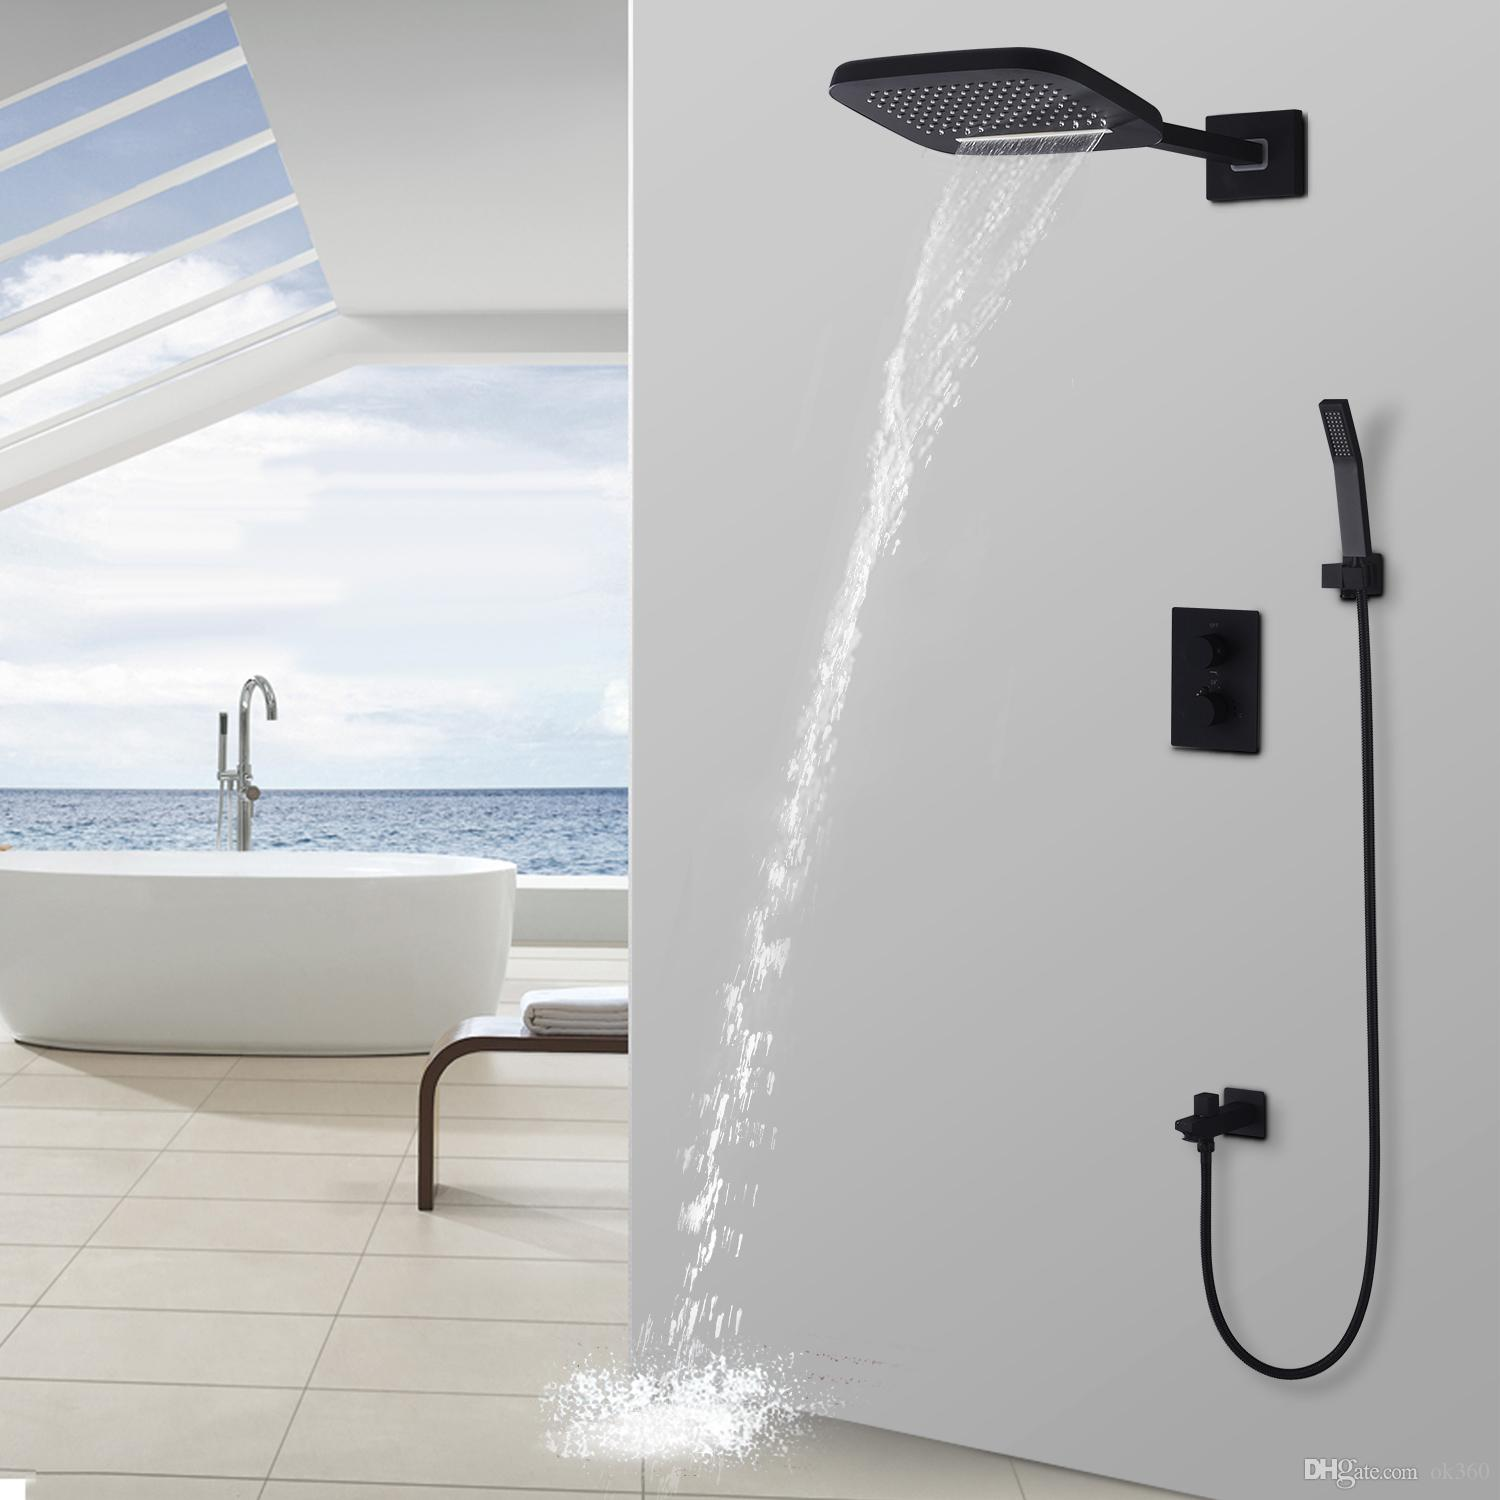 2019 Black Shower Thermostatic Waterfall Rain Shower Head Hand Shower Set In Solid Brass Bathroom Faucet Wall Mounted System From Ok360 419 97